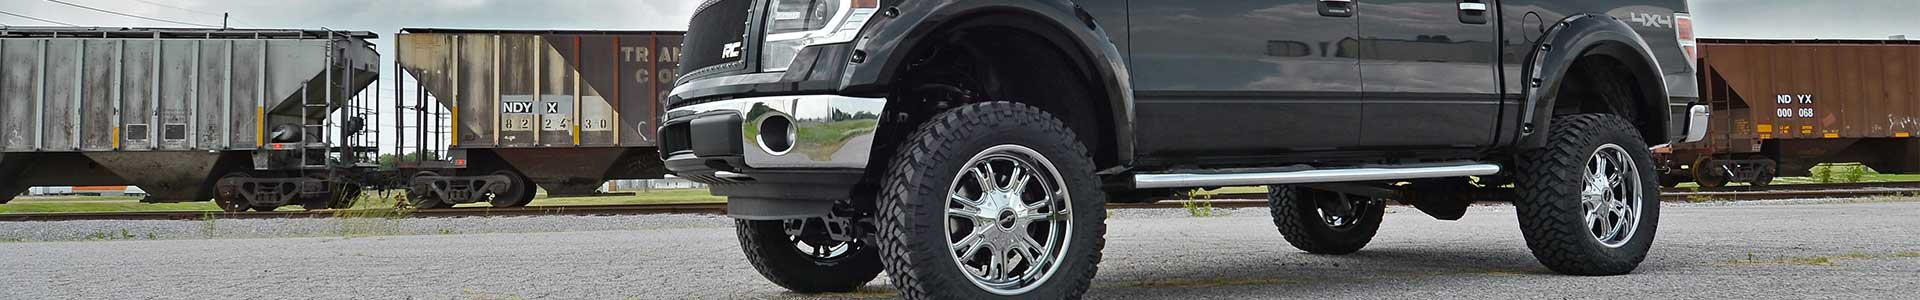 WHEELS, TIRES, AND LIFT KITS FOR TRUCKS